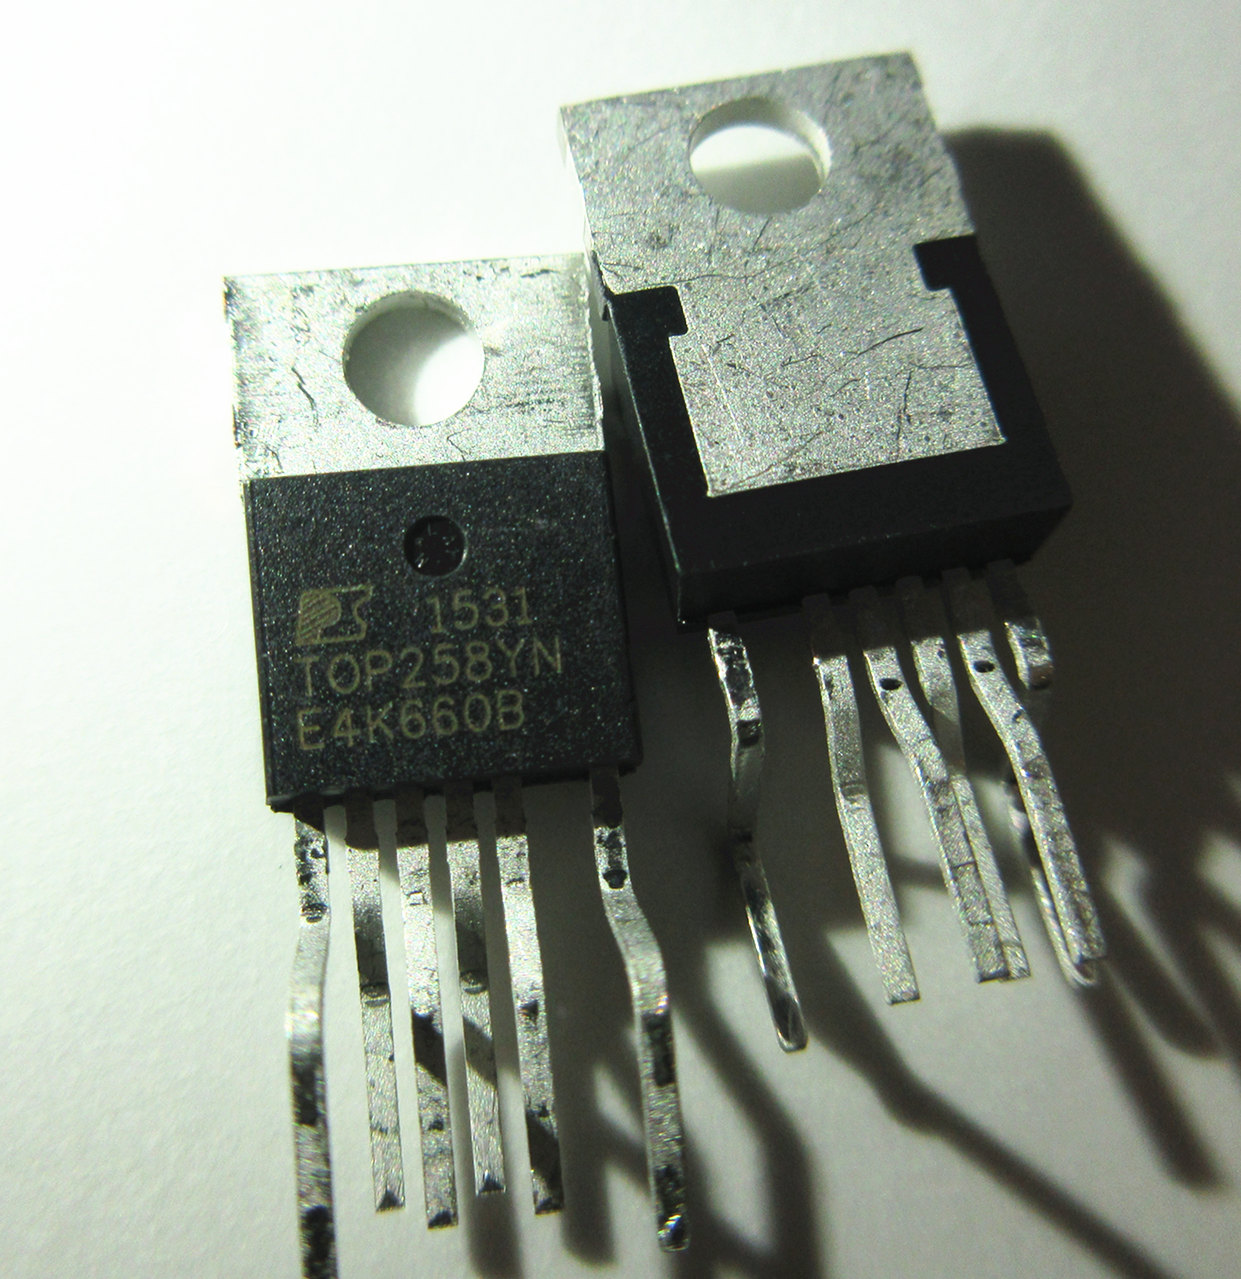 1pcs New TOP258YN TOP258 YN TO-220 TO220 Ic Chips Replacement